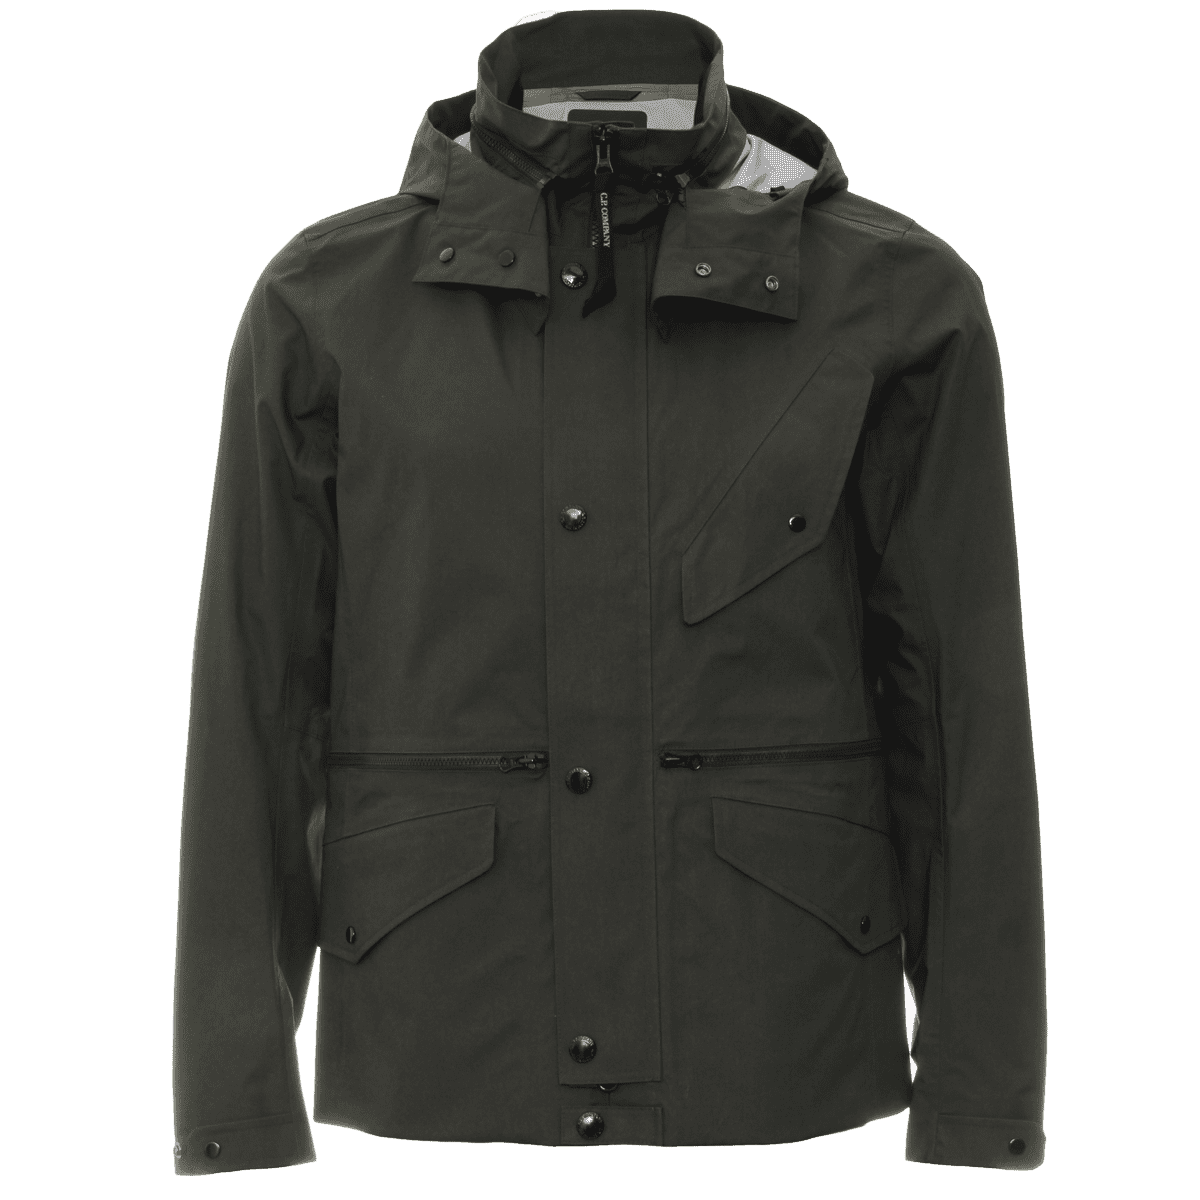 Cabinero Berlin Herrenmode SS17 C.P.Company Goggle Jacket 02CMOW122A005001A (7)